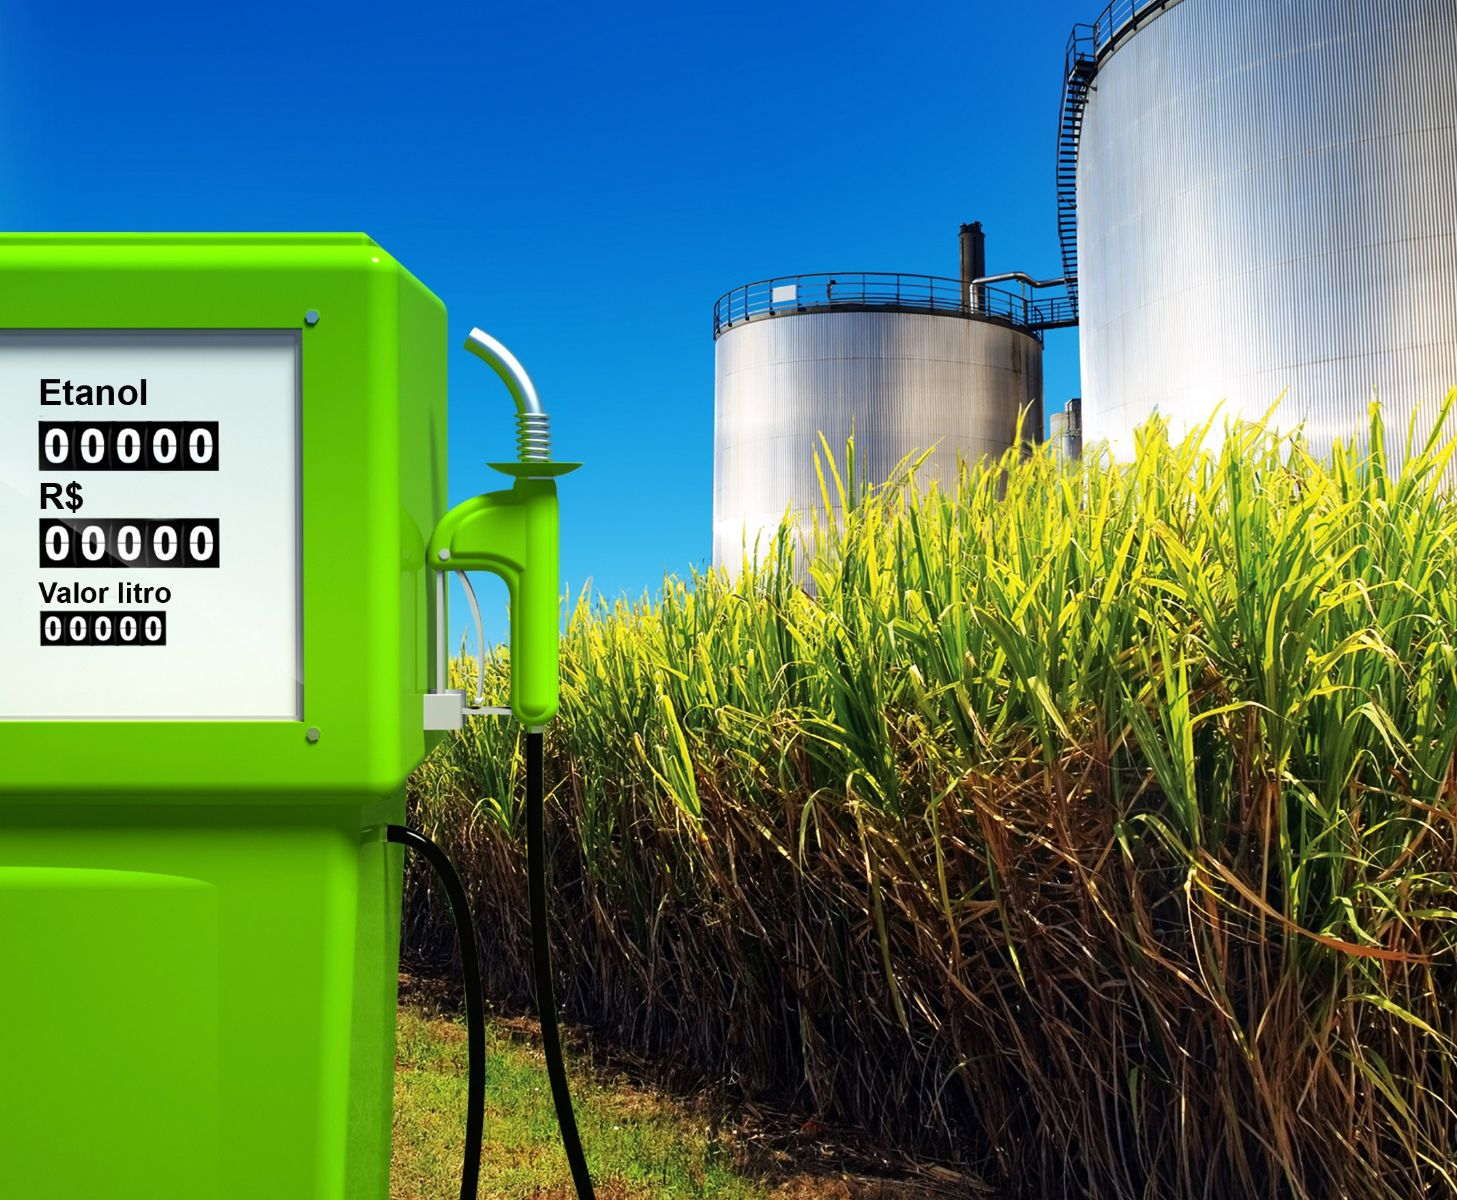 Biofuels: From boom to bust